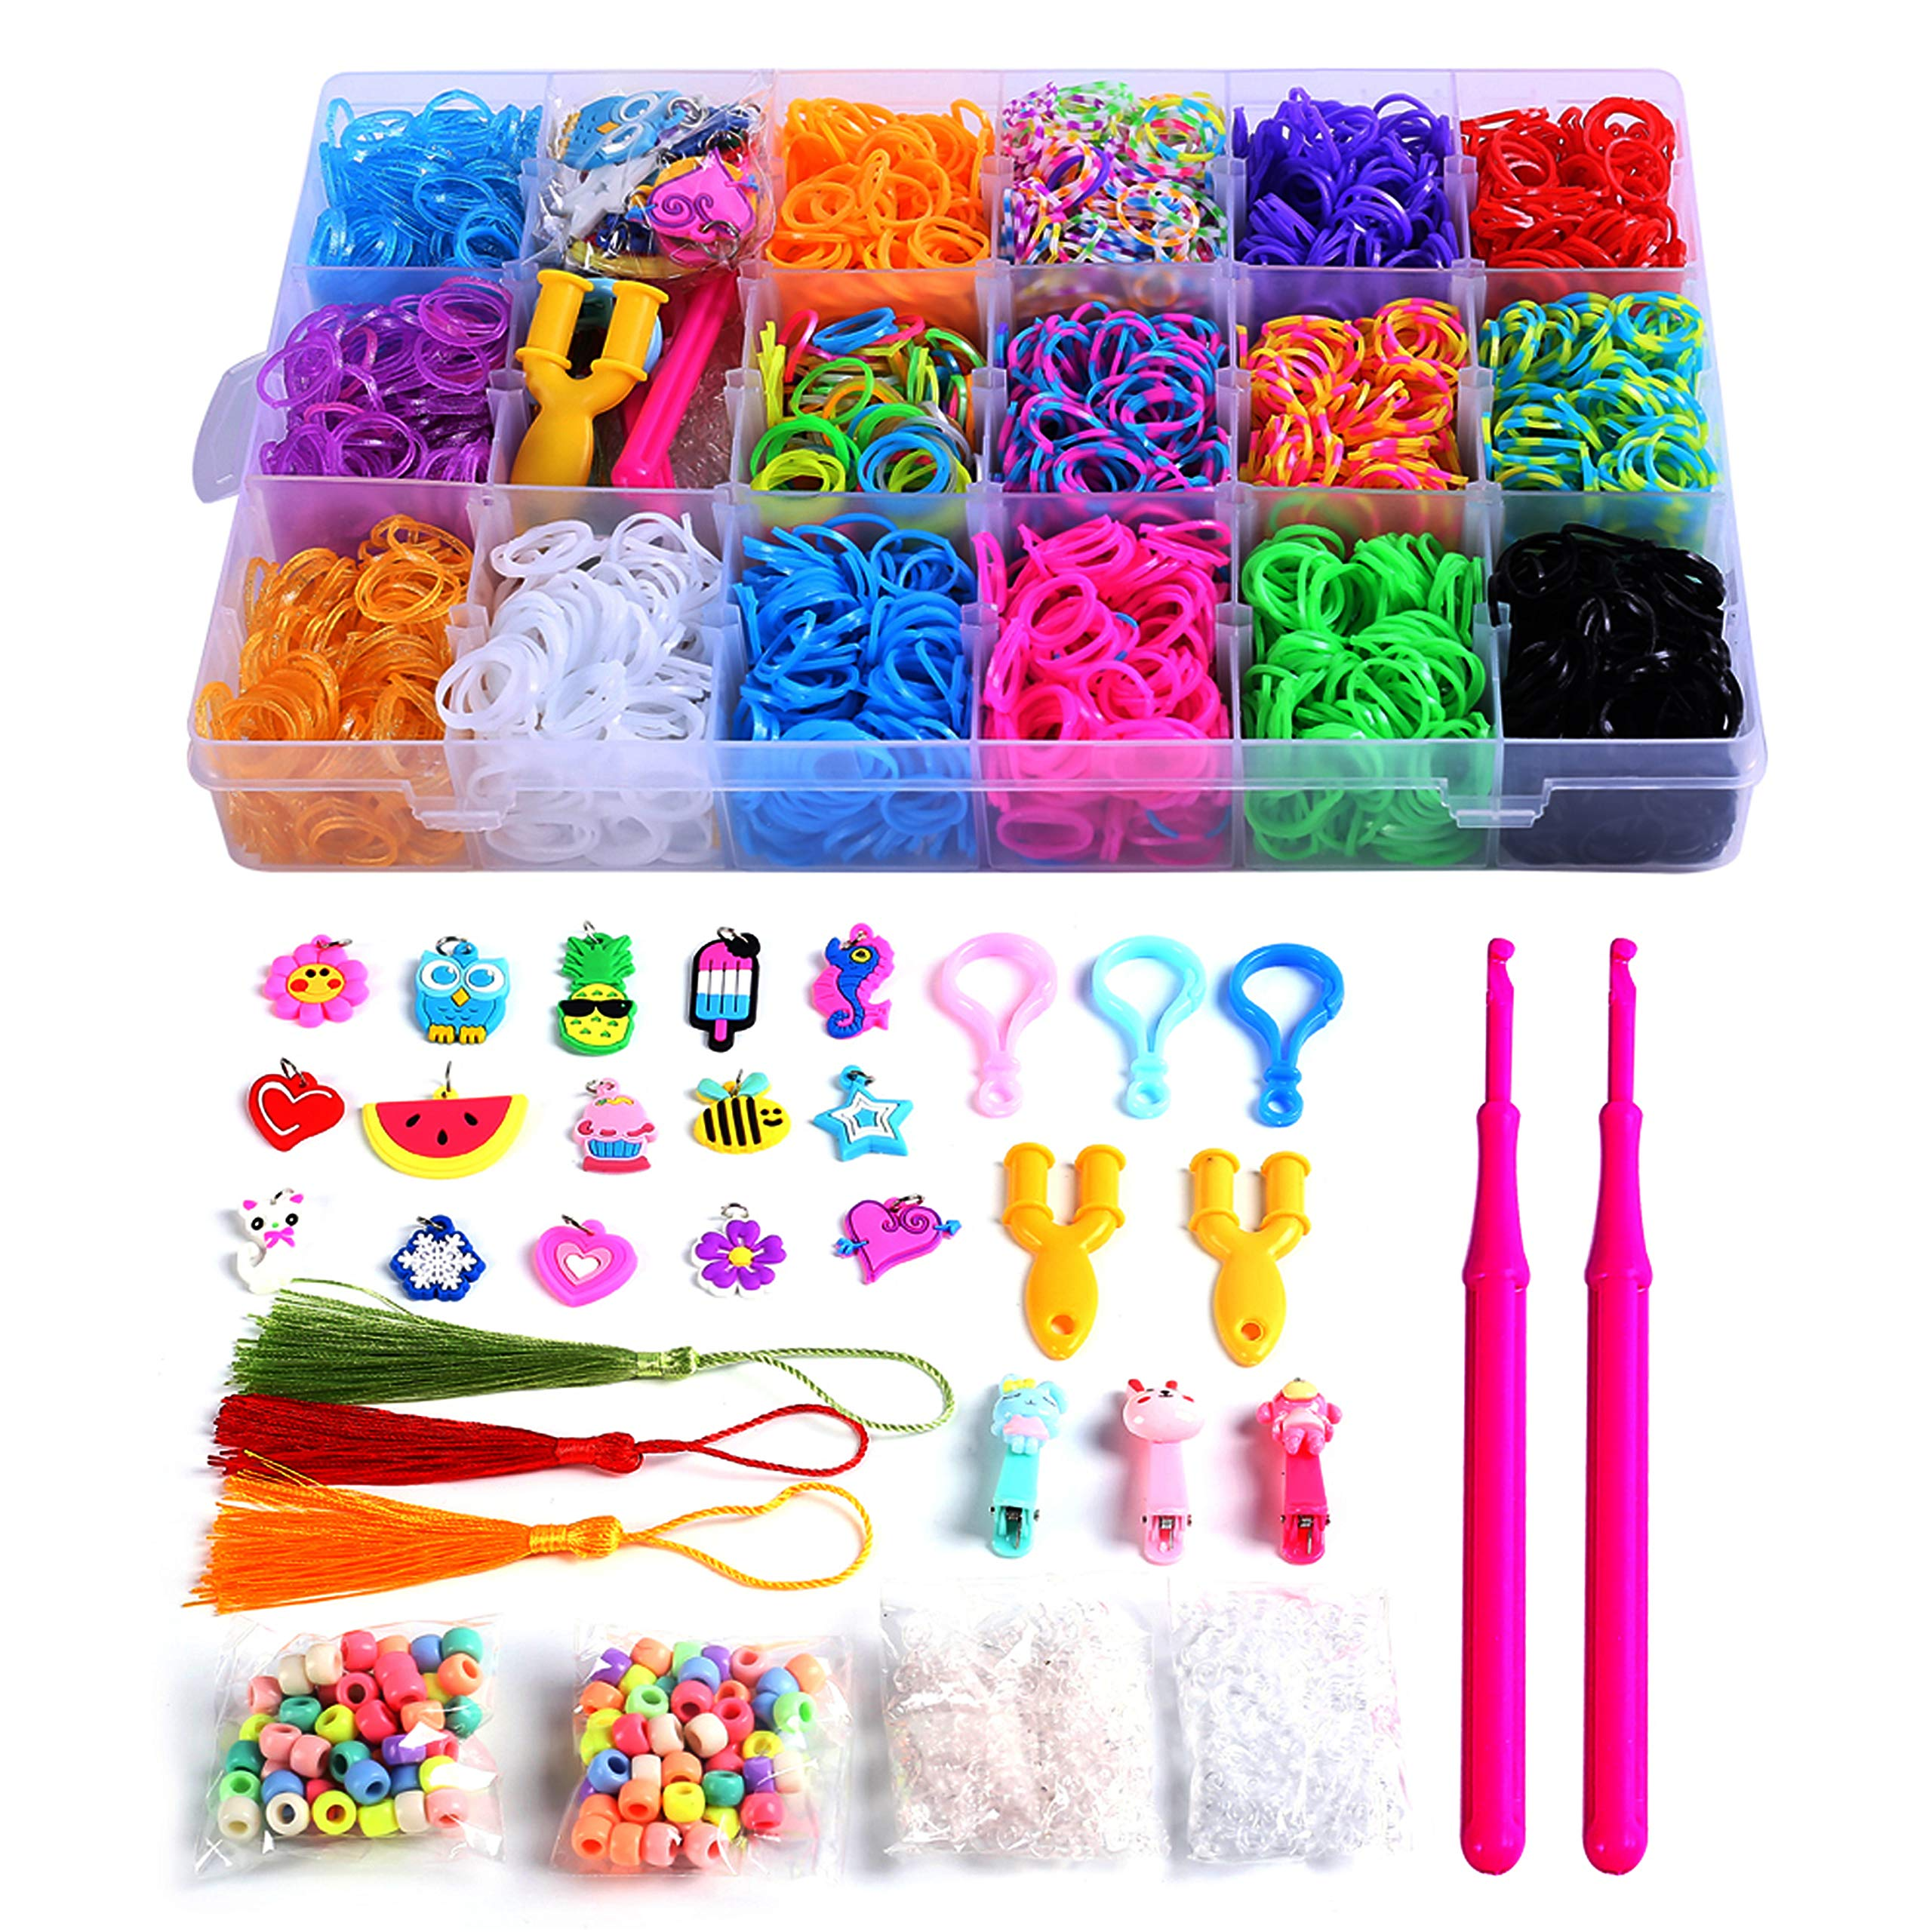 PENGXUAN Rainbow Color Rubber Loom Bands Refills Kit Set Storage Box For Kids Party DIY Crafting Bracelets Toys Gifts -Including 5800 Pcs Rubber Loom Bands 300 Pcs Slips 100 Beads 15 Charms and More